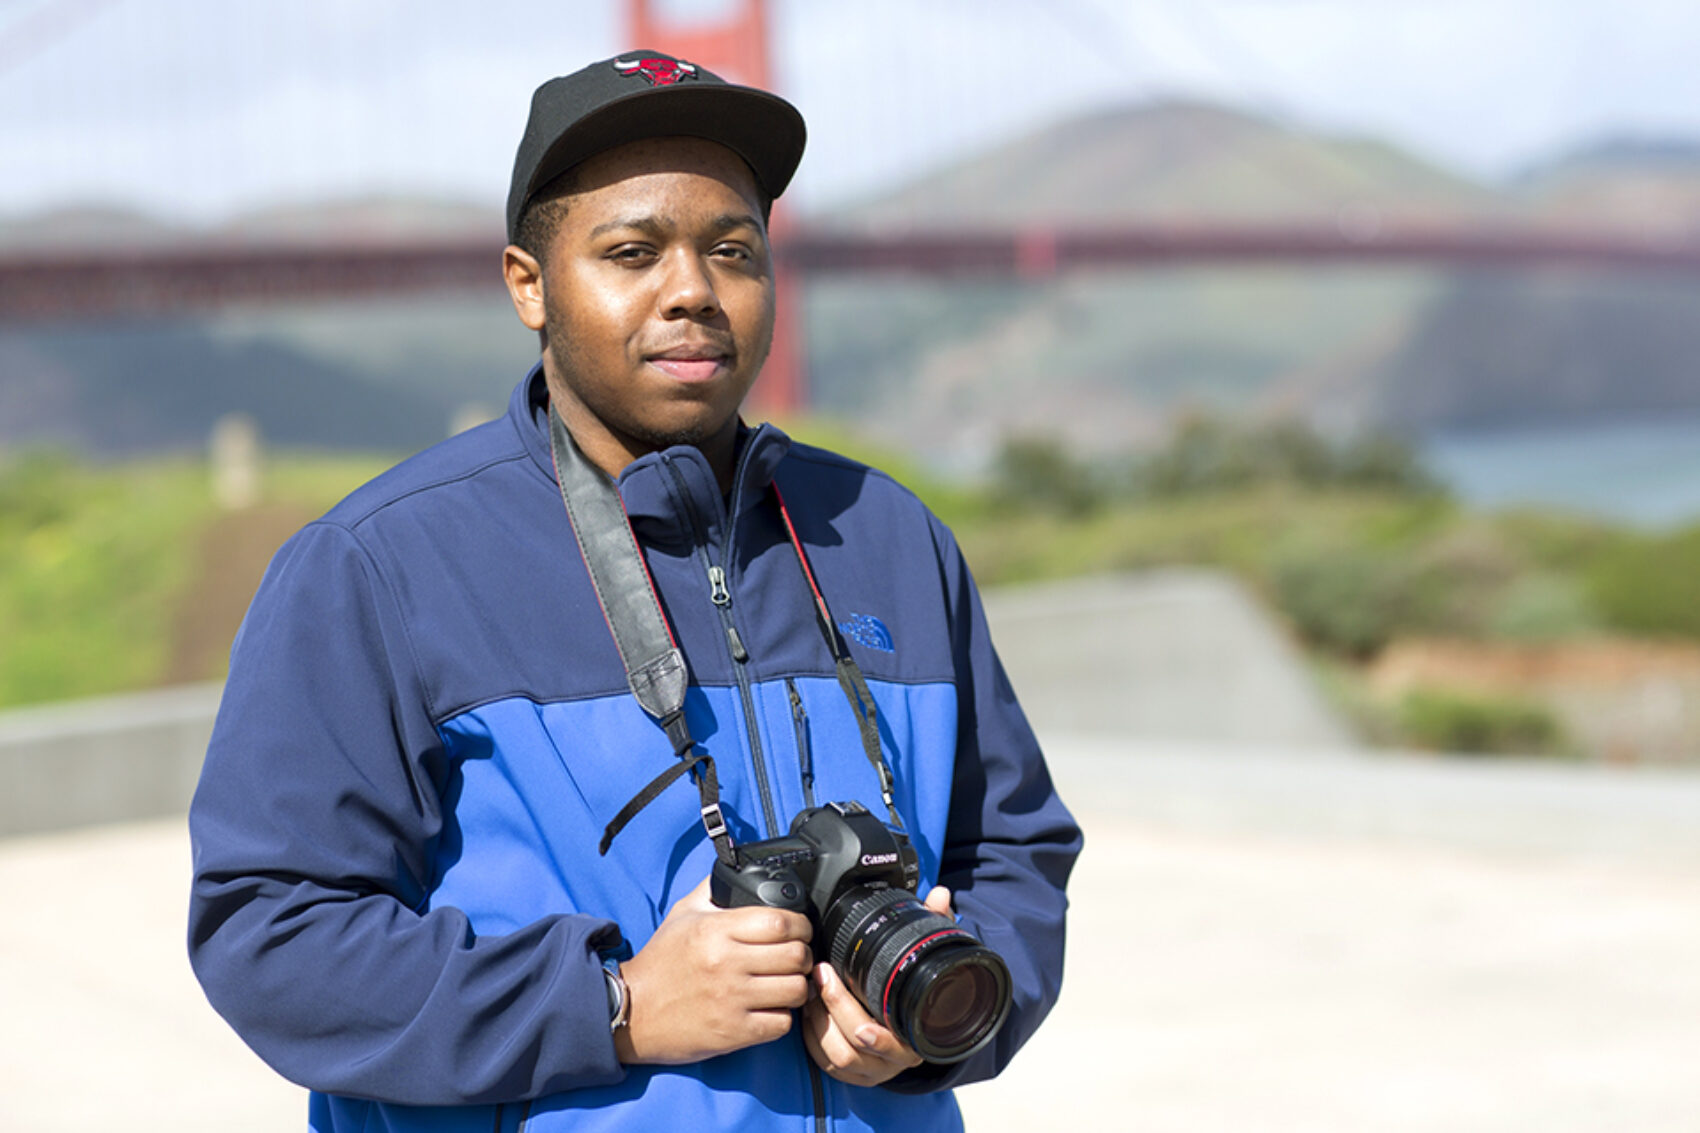 De'Andre Armstrong, University of San Francisco Class of 2016, Media Studies & Film